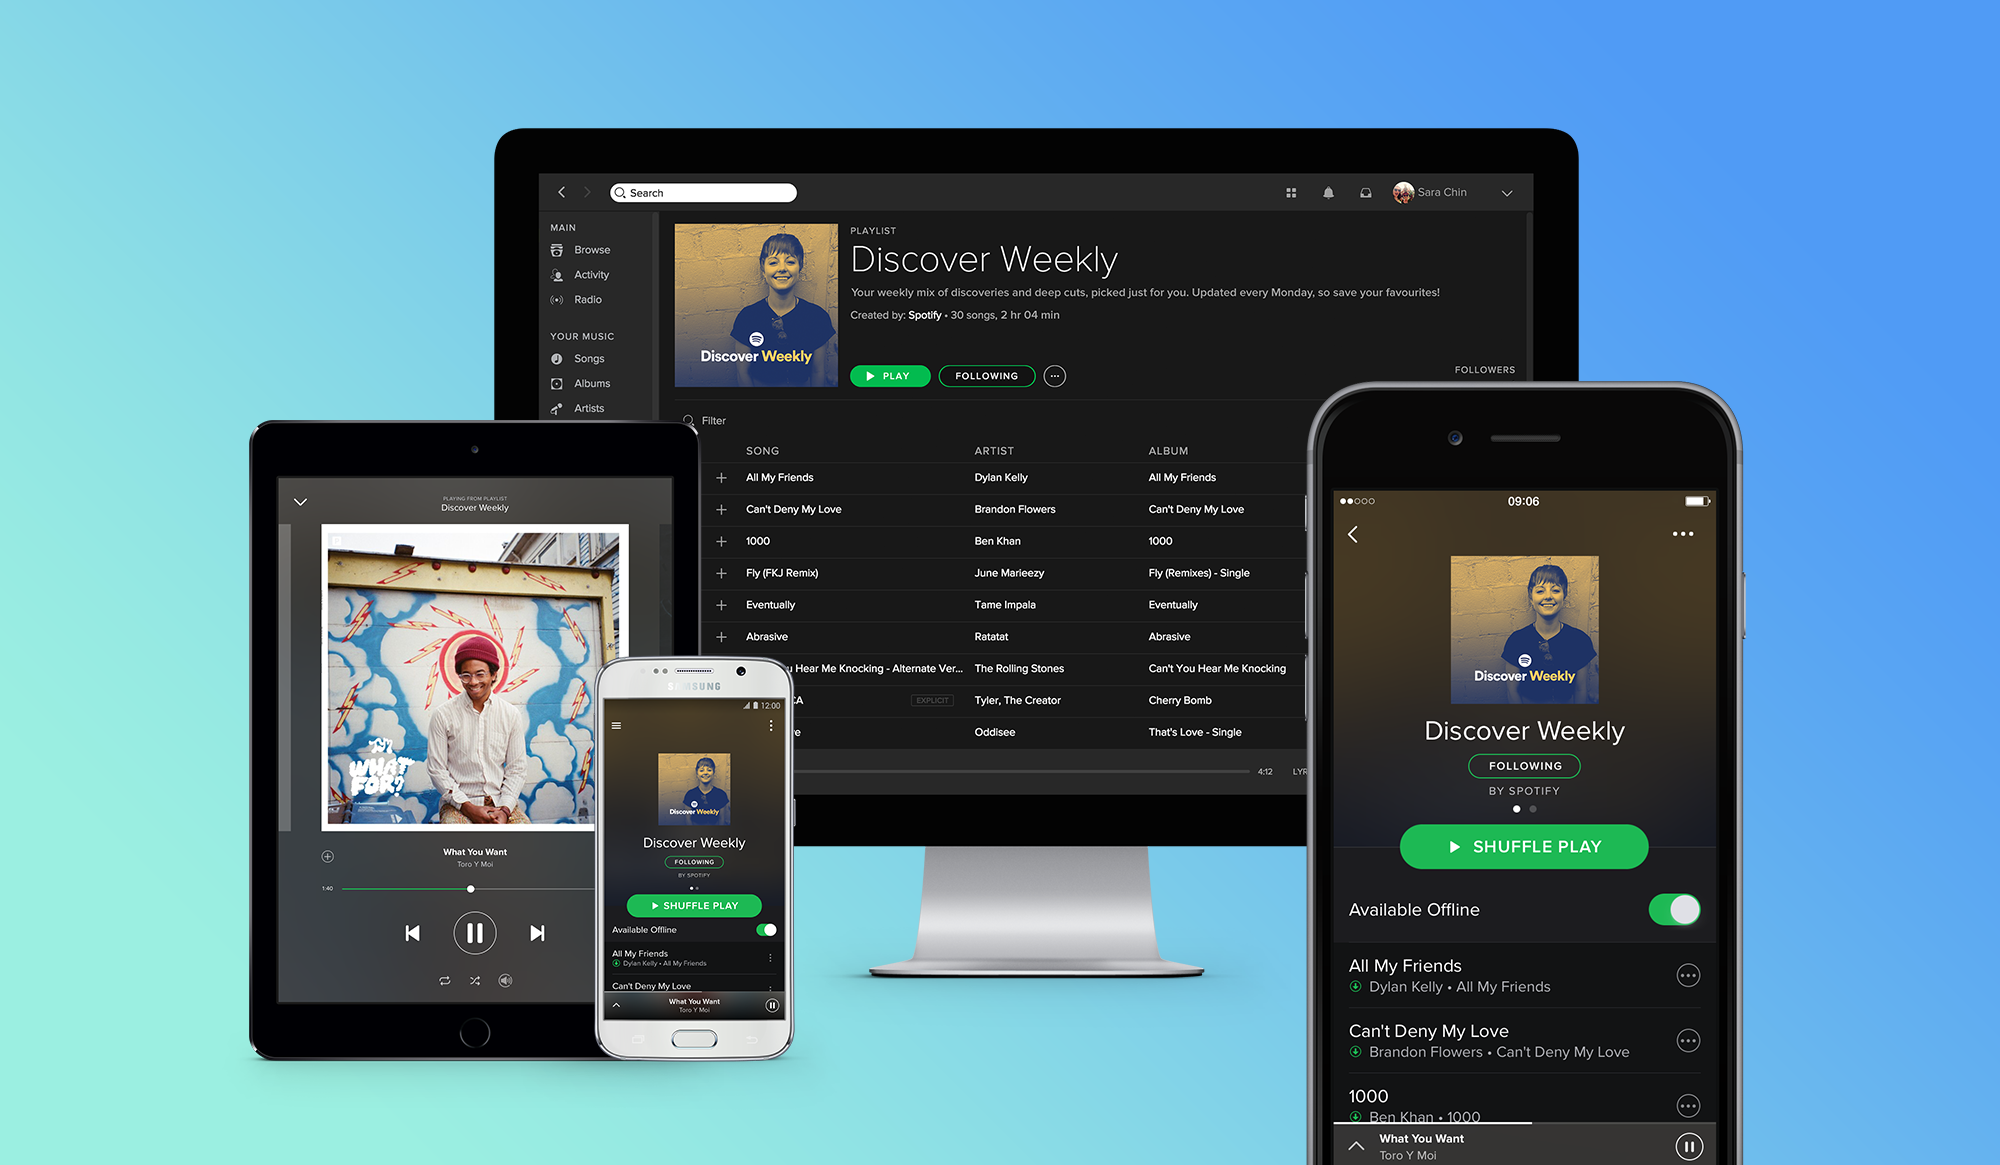 Spotify claims 'Apple tax' harms consumers, stifles rivals: files complaint with EU